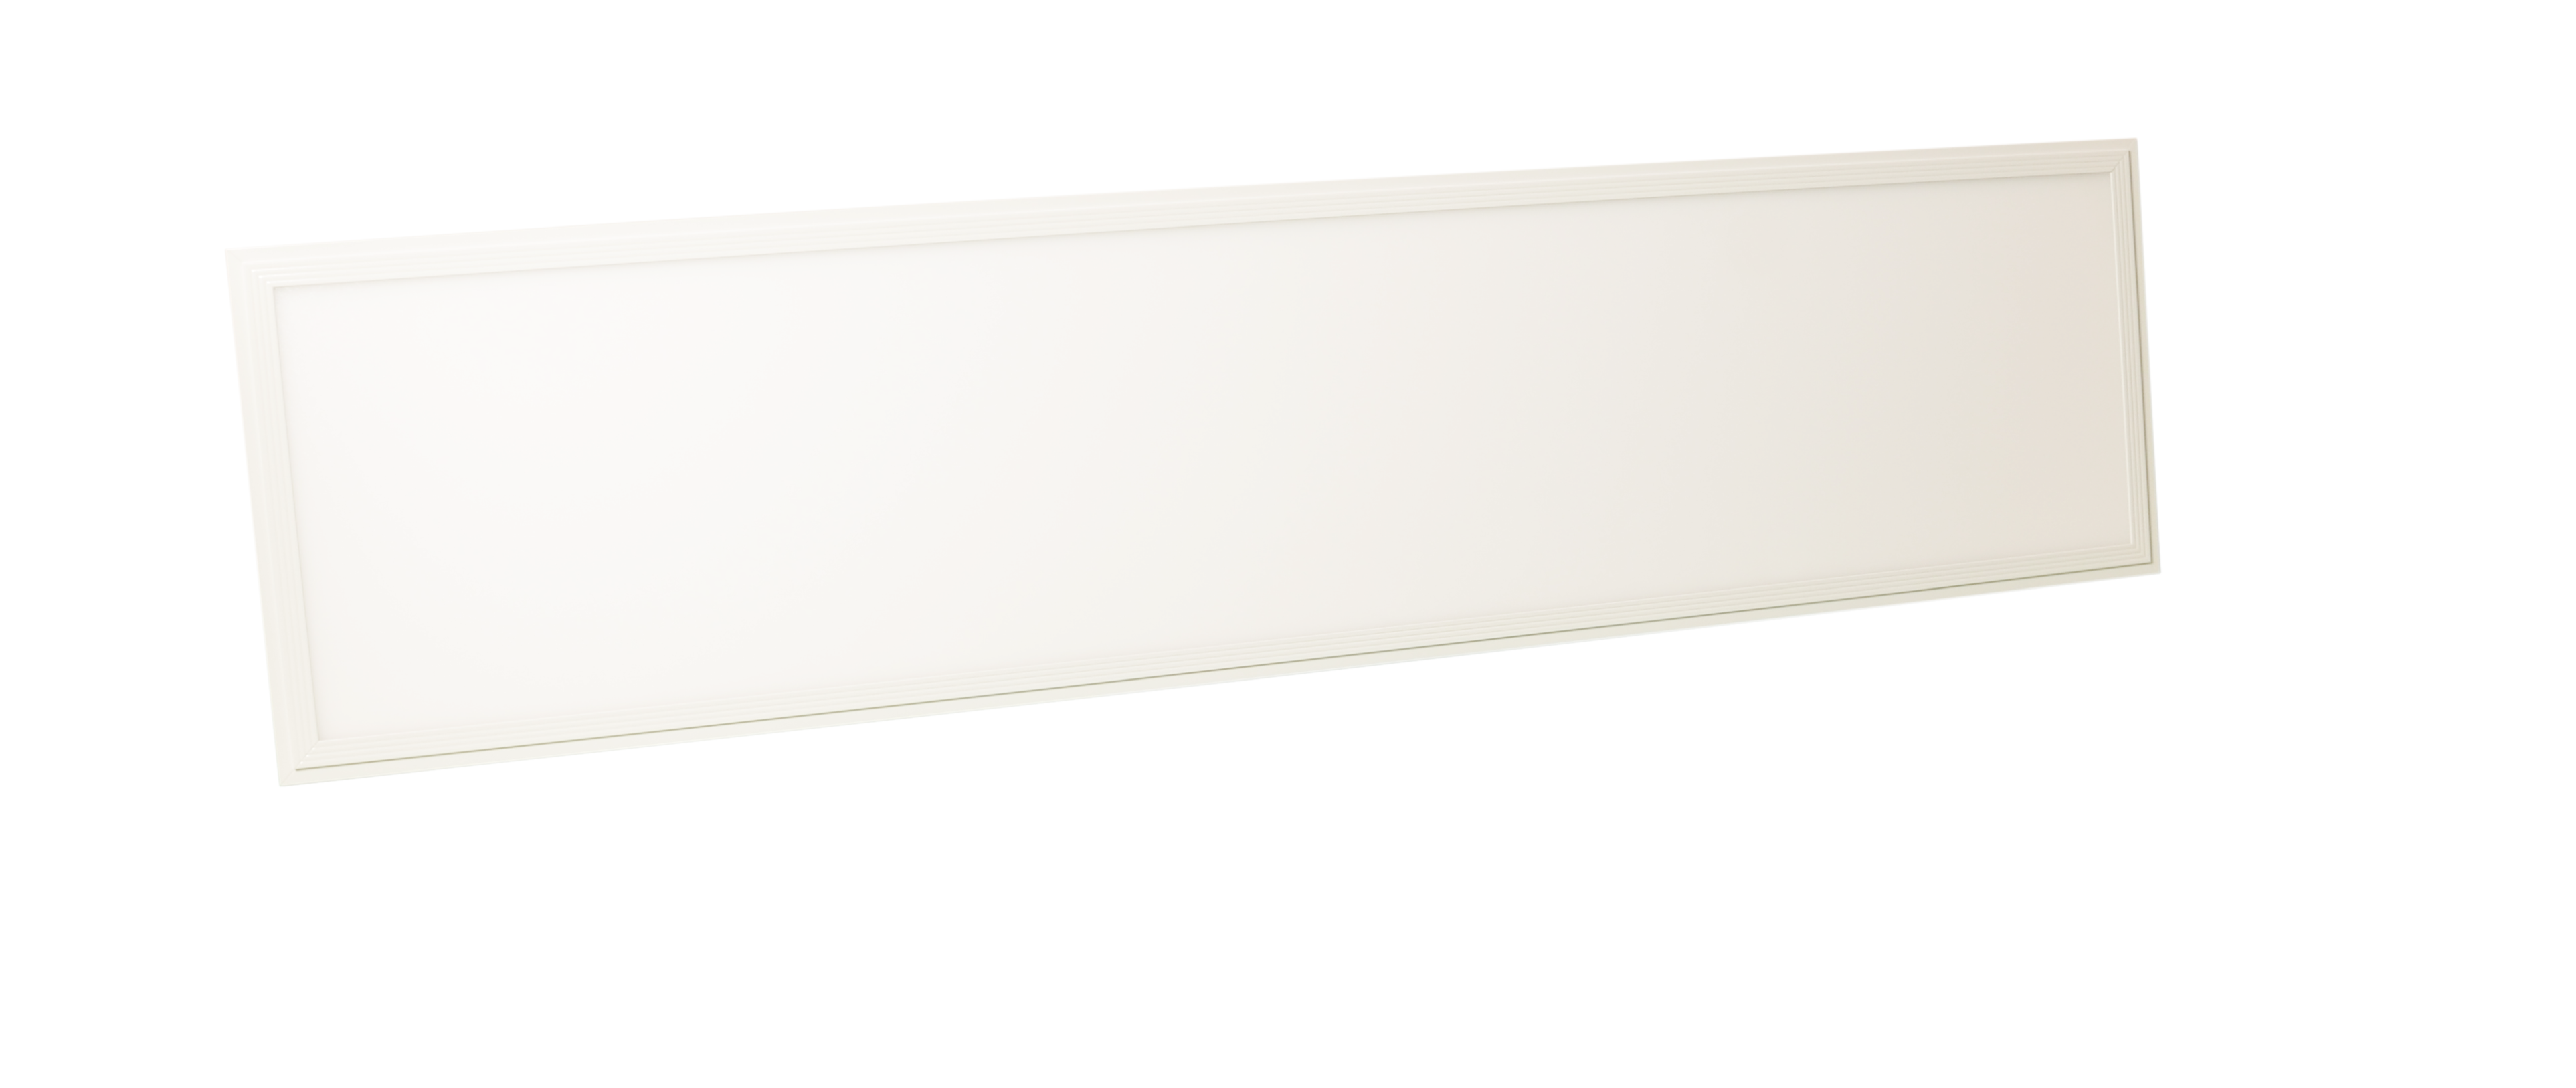 LED LIGHT PANEL - 36W - 1200mm X 300mm - 6000K - 120L/W